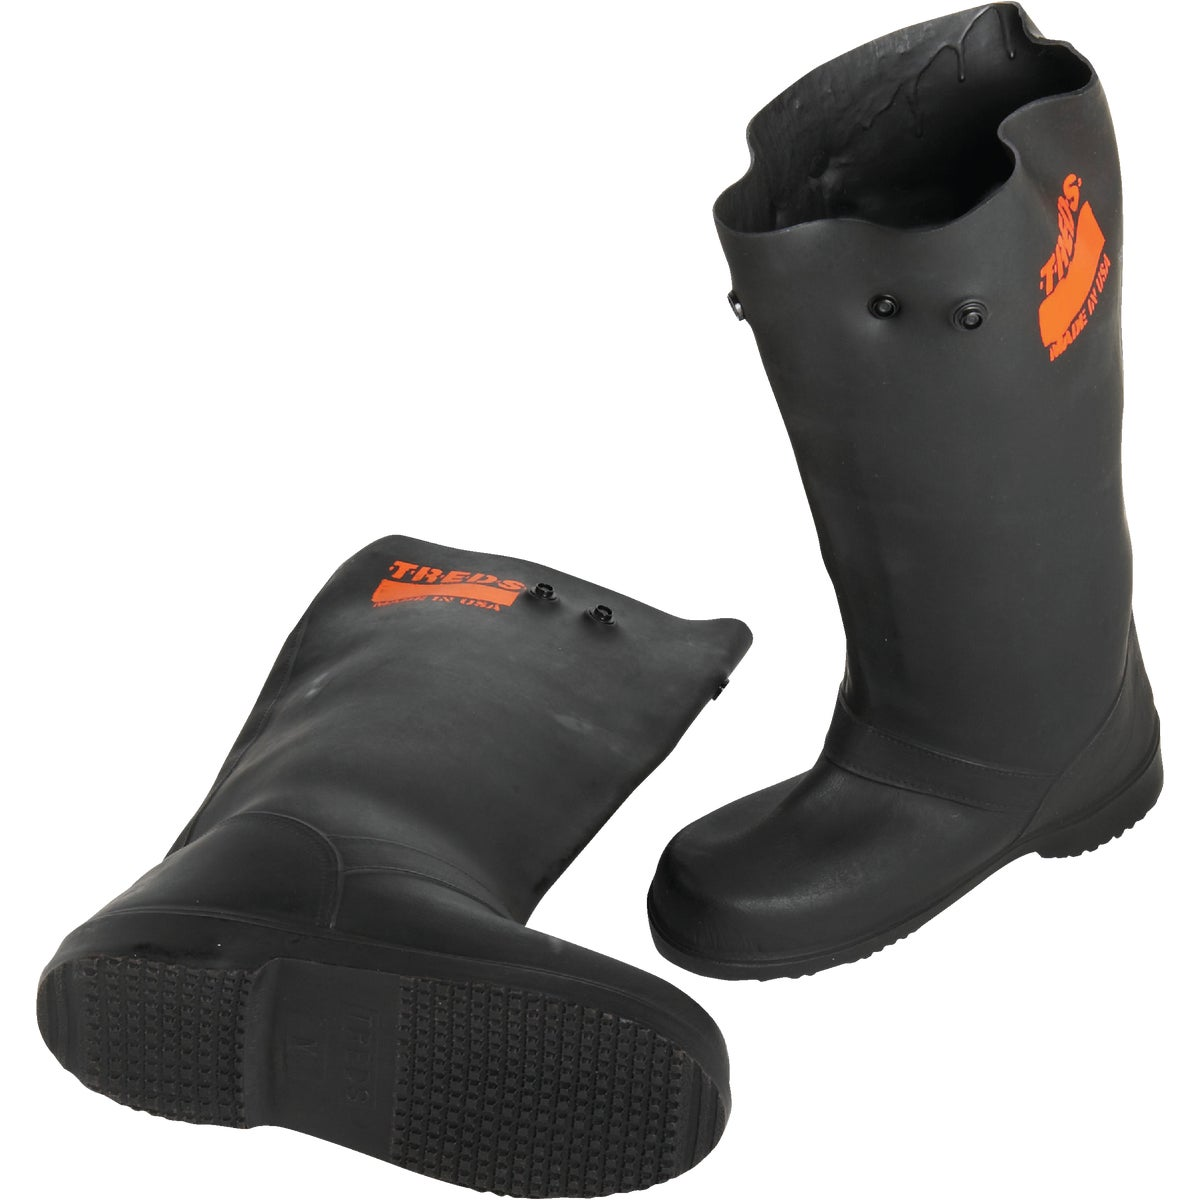 "17"" L/XL TRED RUBBR BOOT - 17855 by Advantage Prod Treds"